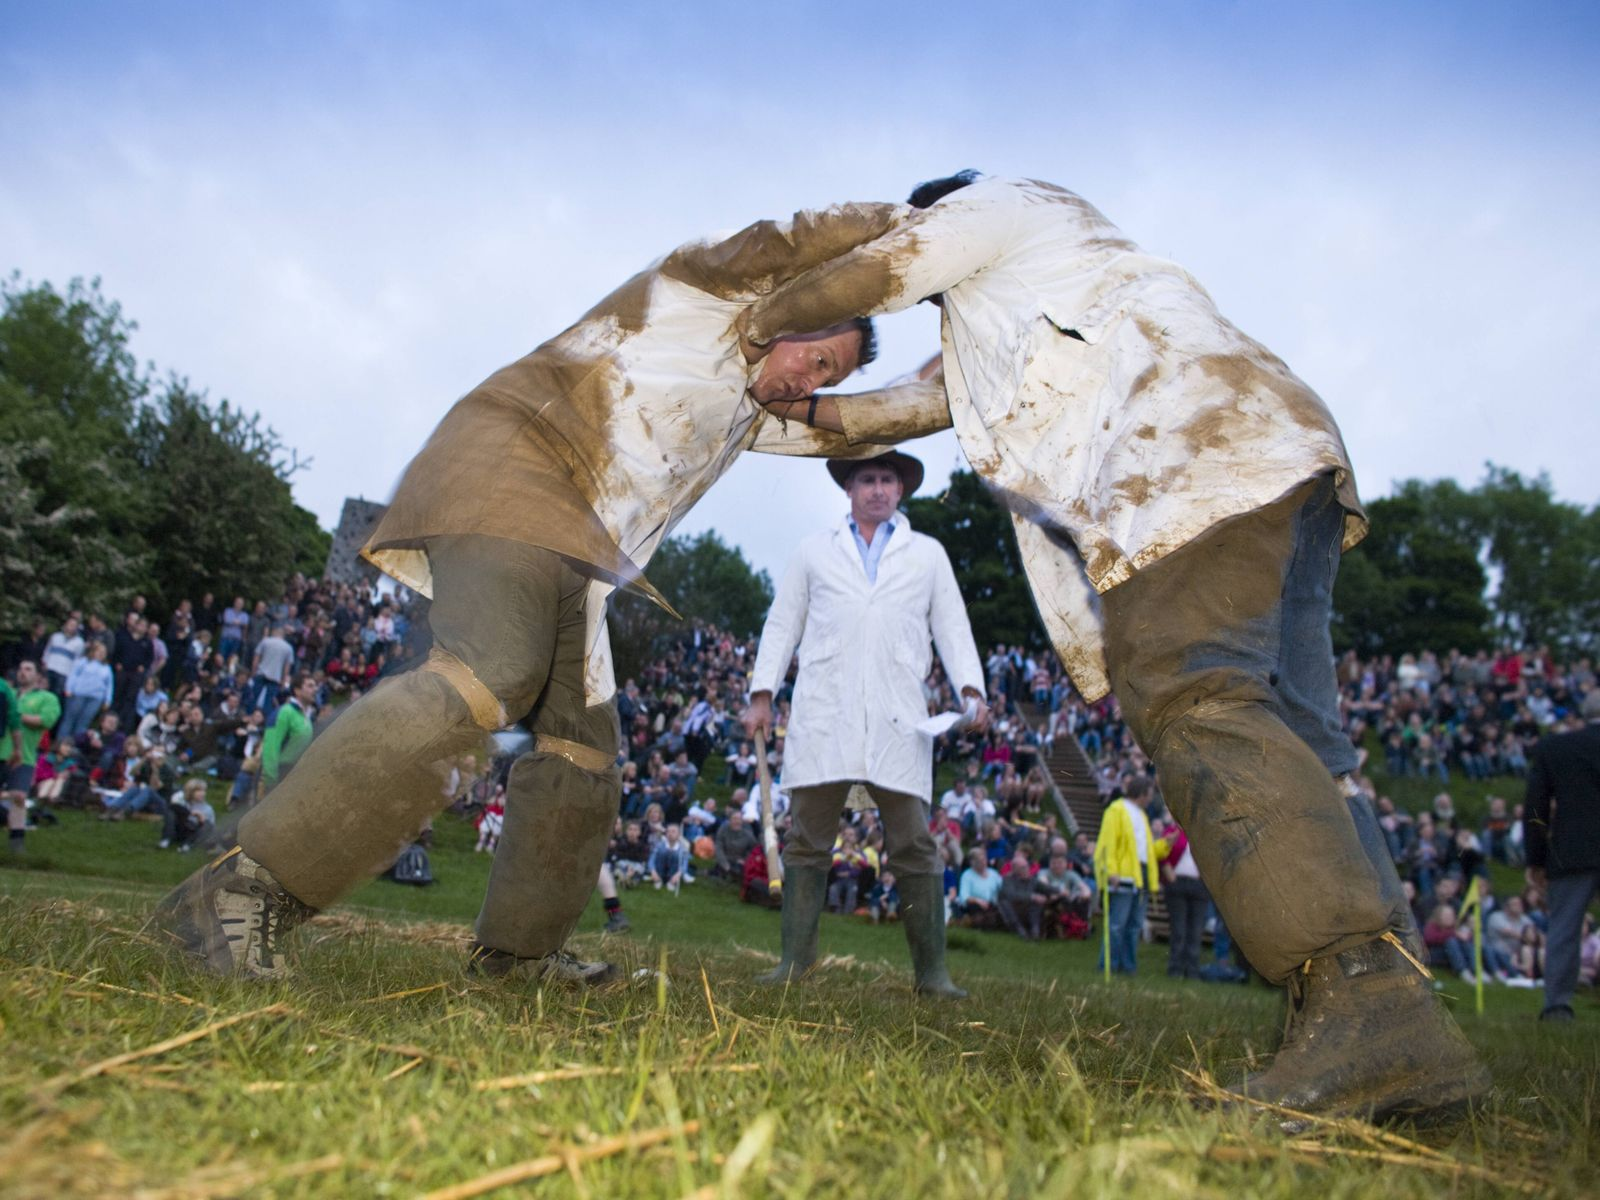 ENGLAND Men participating in a shin kicking event at the Cotswold Olimpicks Dover s Hill Glouceste